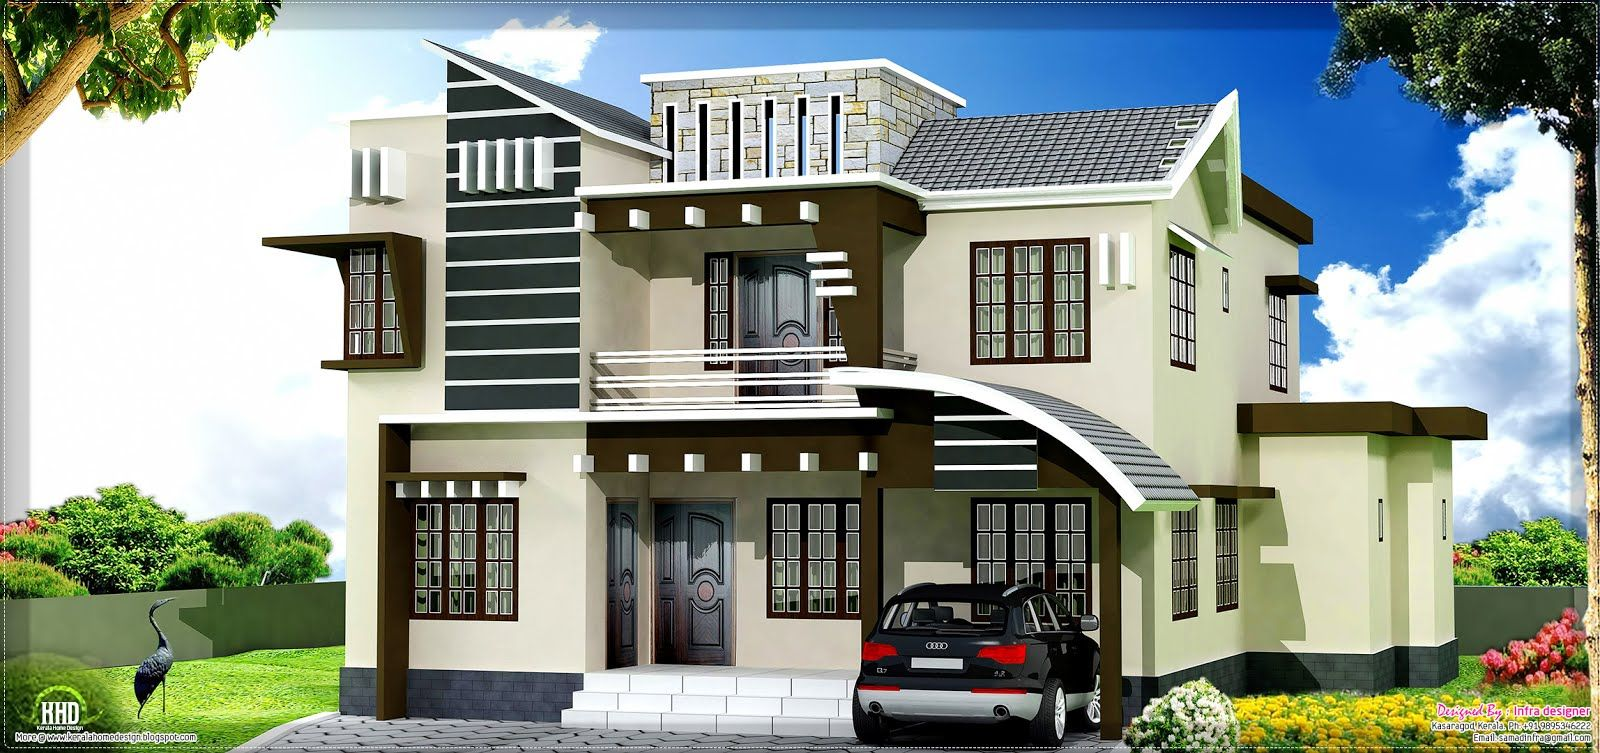 2450 sqfeet home design from kasaragod kerala kerala home design - Home Design Pictures